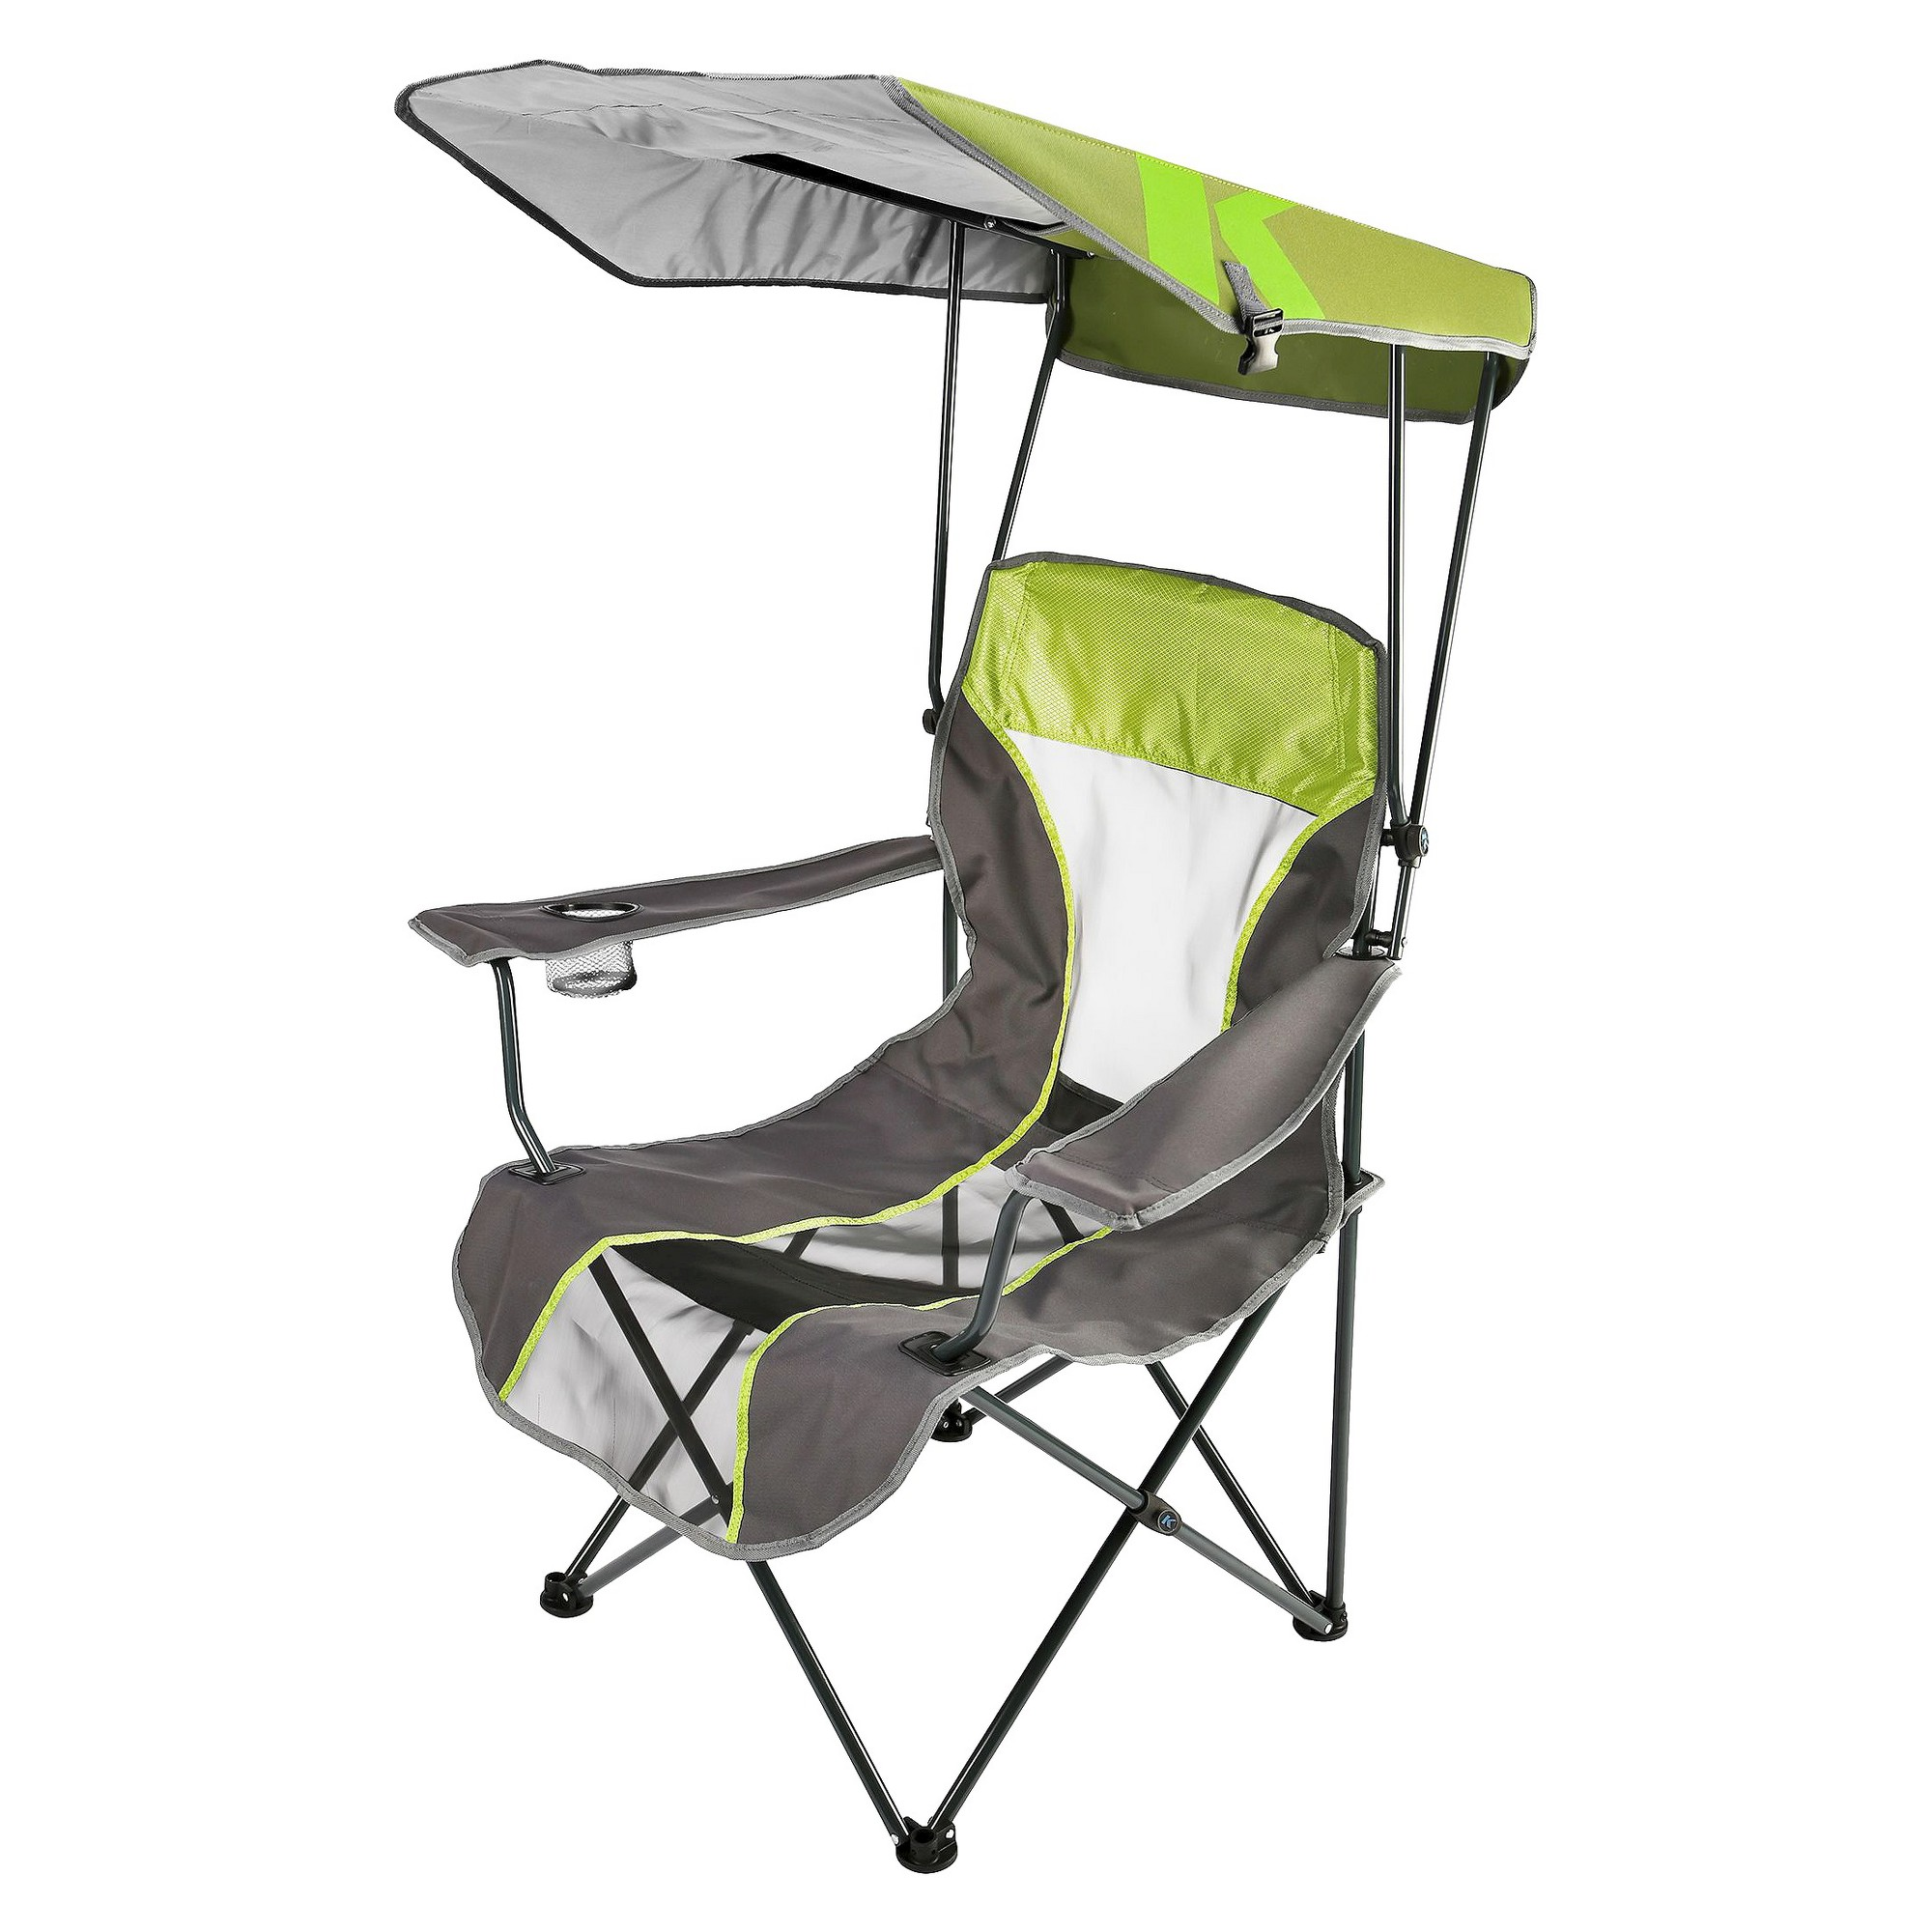 Swimways Premium Canopy Chair Lime Green, Outdoor